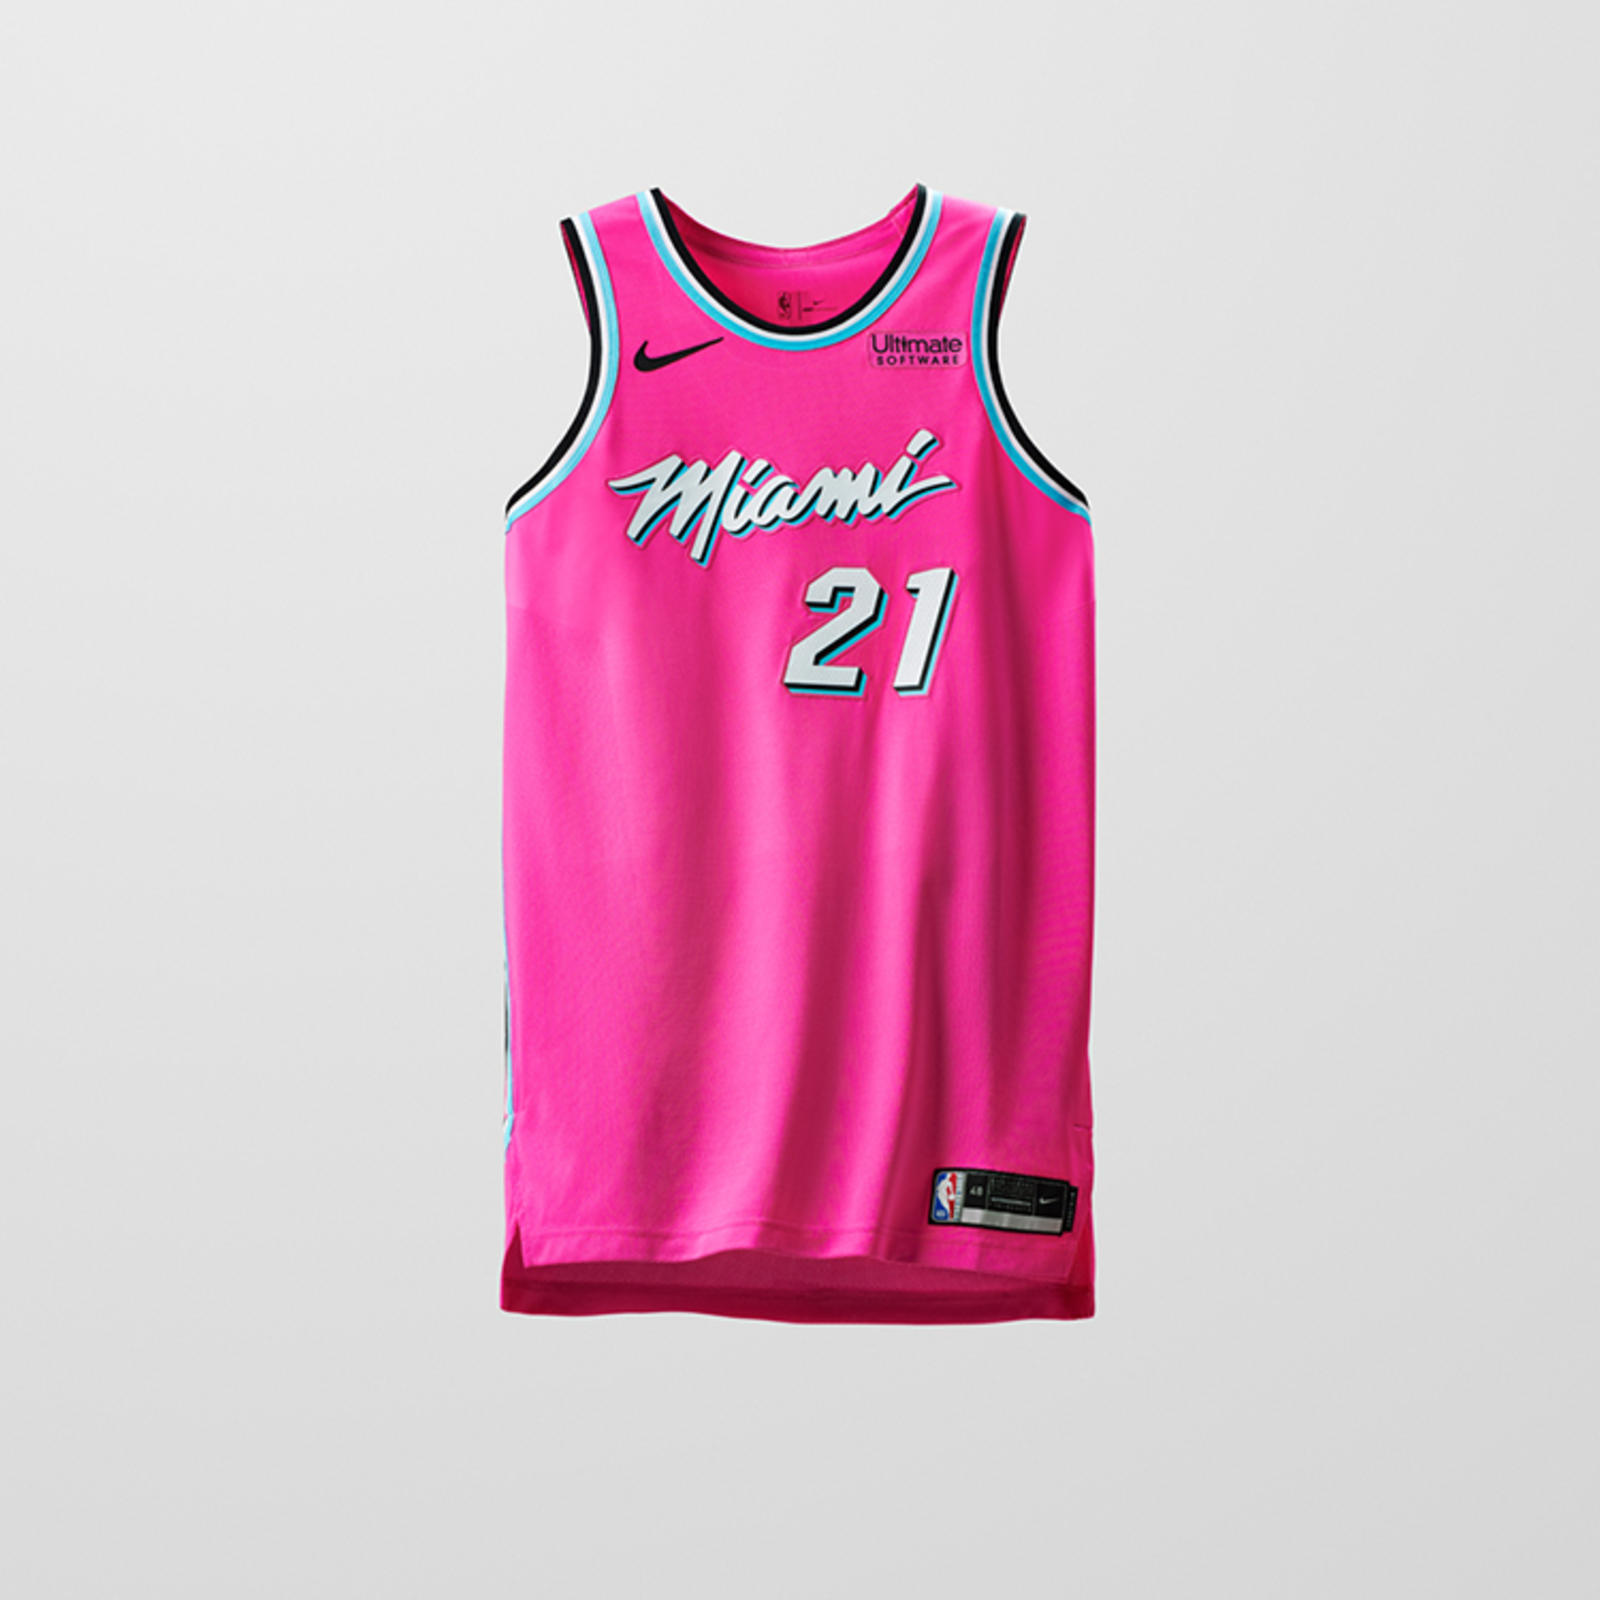 5561a61d23f8 Introducing the Nike x NBA EARNED Edition Uniforms 8